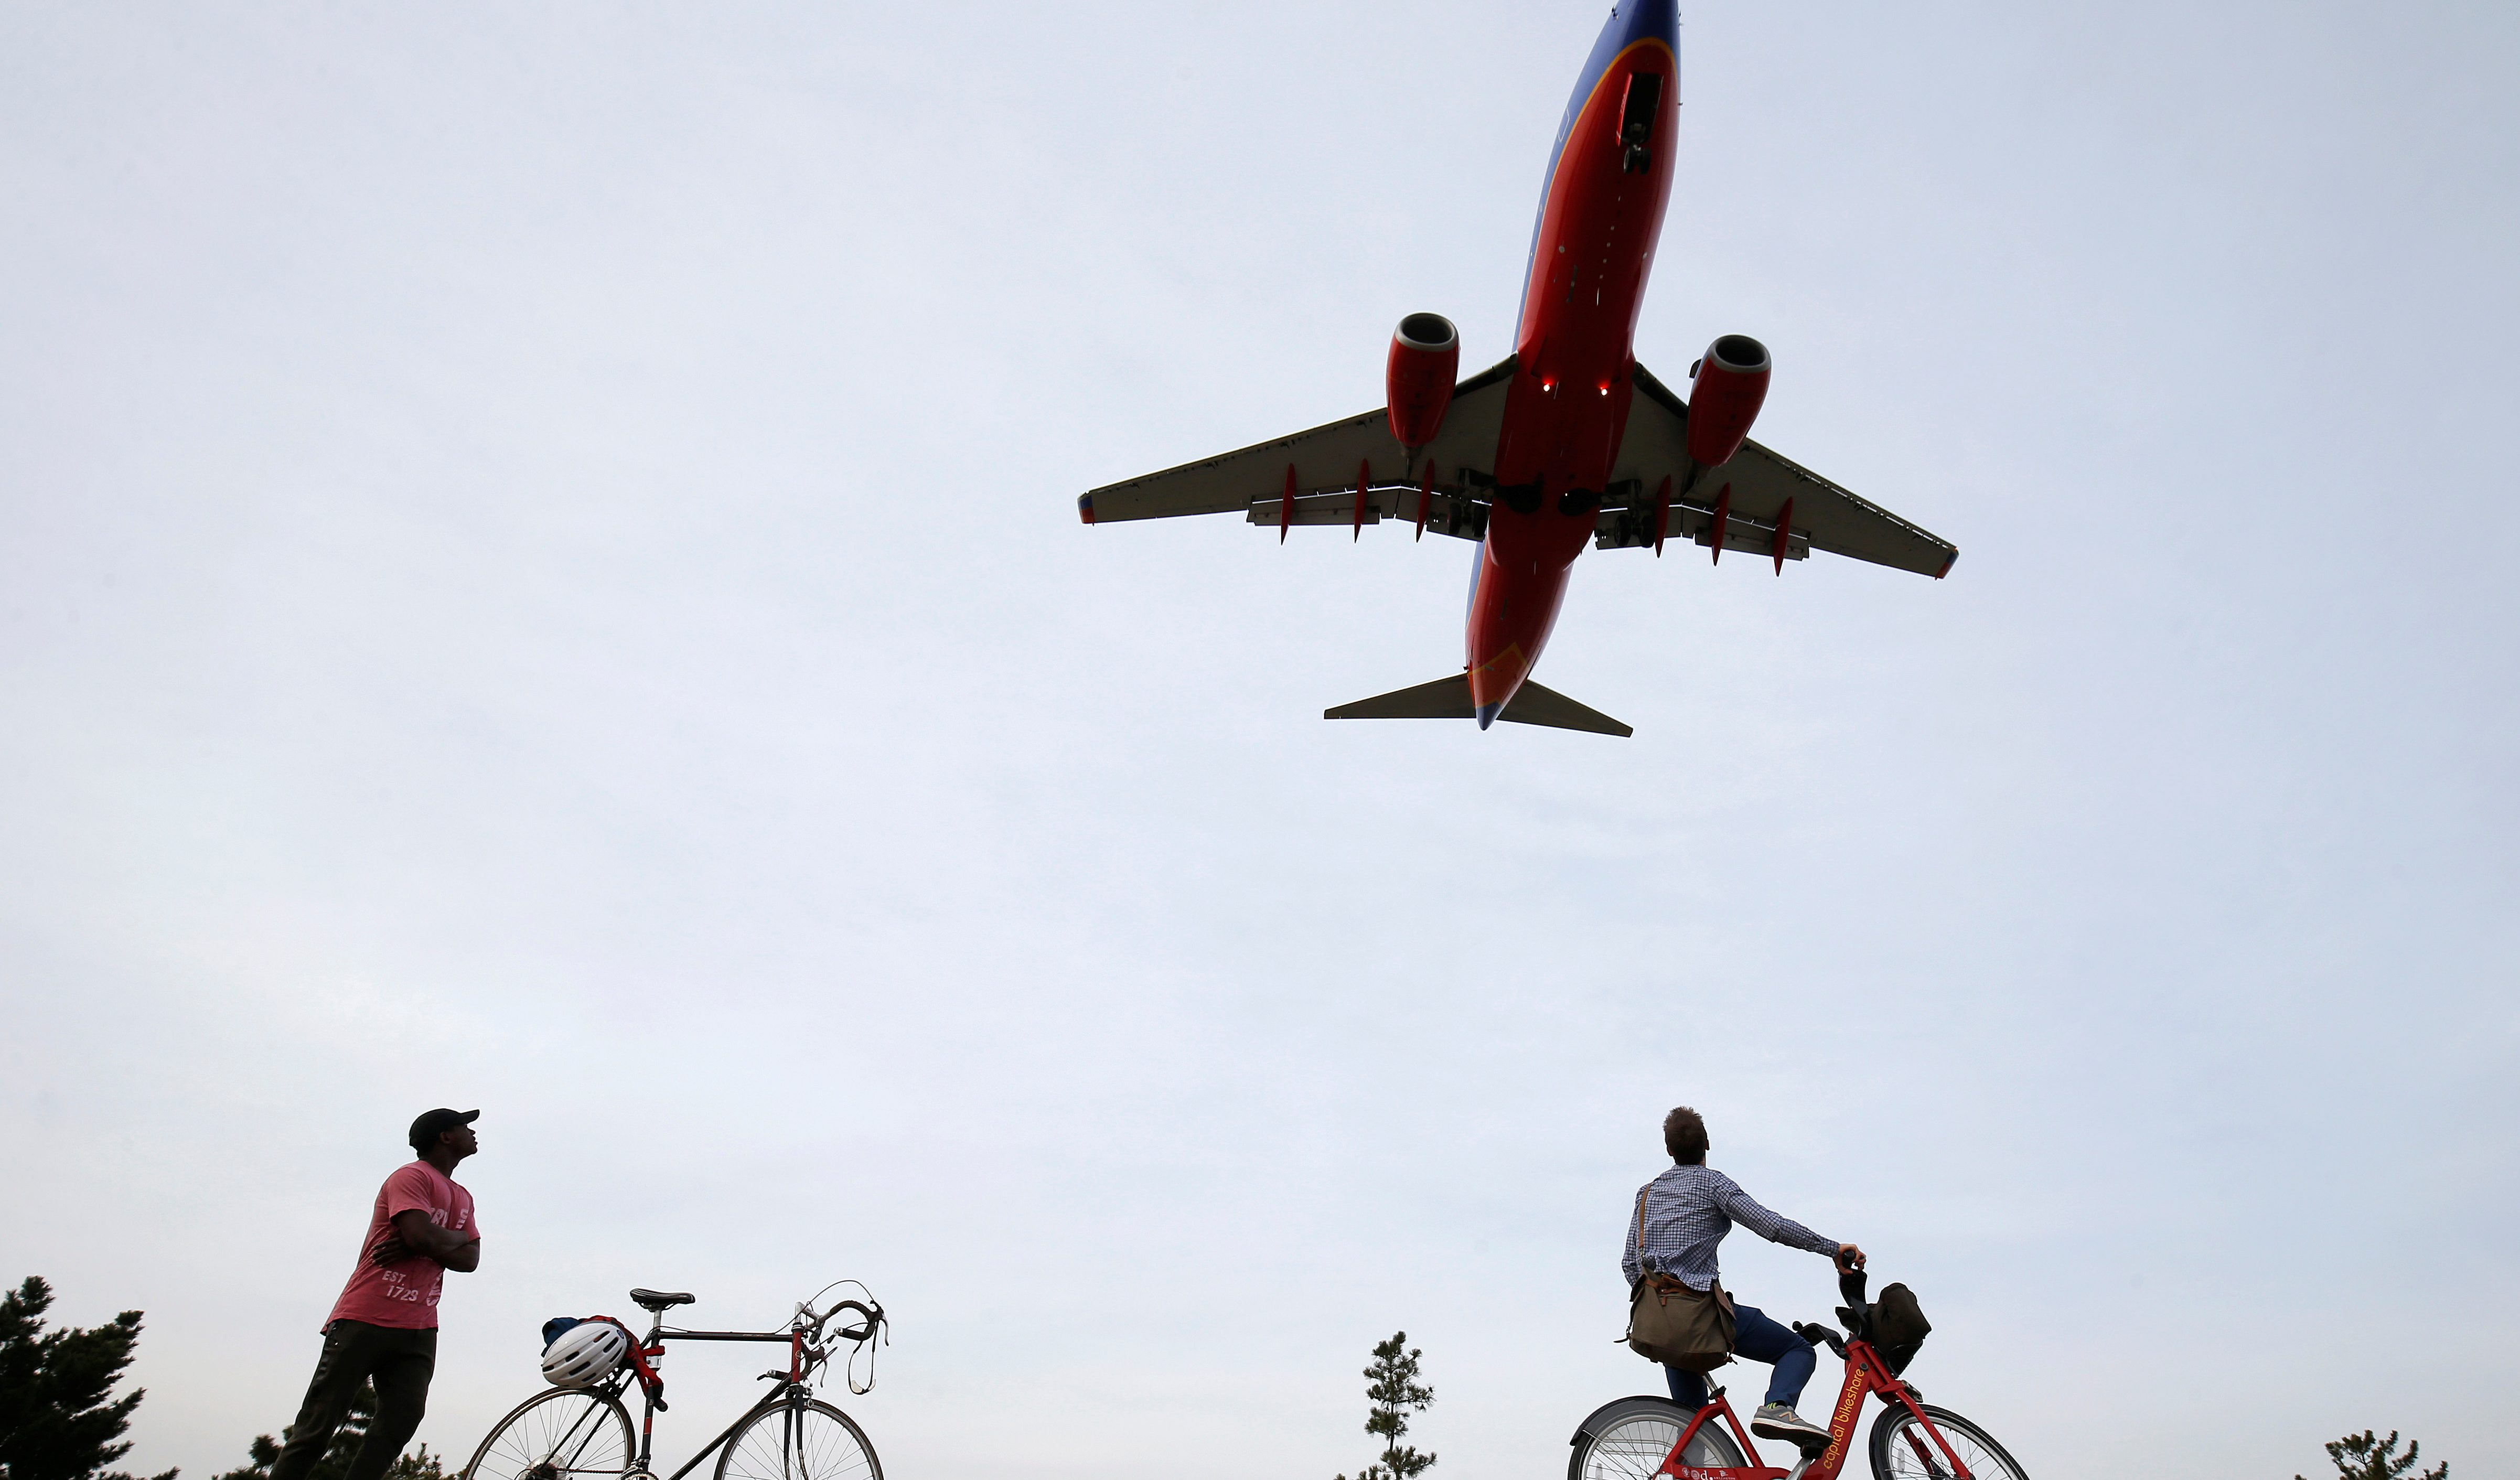 People watch airplanes land during unseasonably warm weather at Reagan National Airport in Washington, U.S., February 22, 2017.